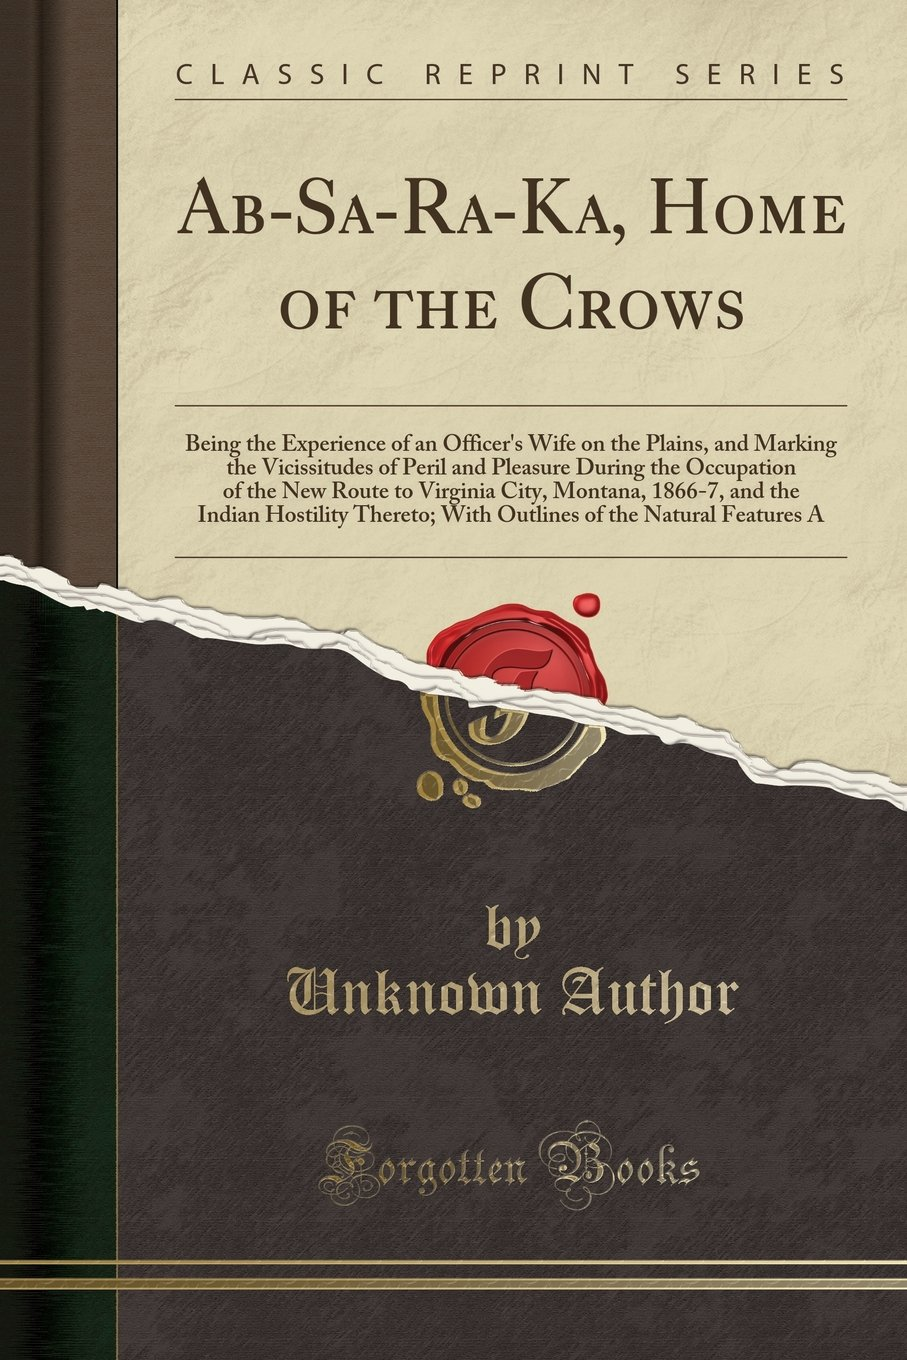 Download Ab-Sa-Ra-Ka, Home of the Crows: Being the Experience of an Officer's Wife on the Plains, and Marking the Vicissitudes of Peril and Pleasure During the ... and the Indian Hostility Thereto; With Ou pdf epub